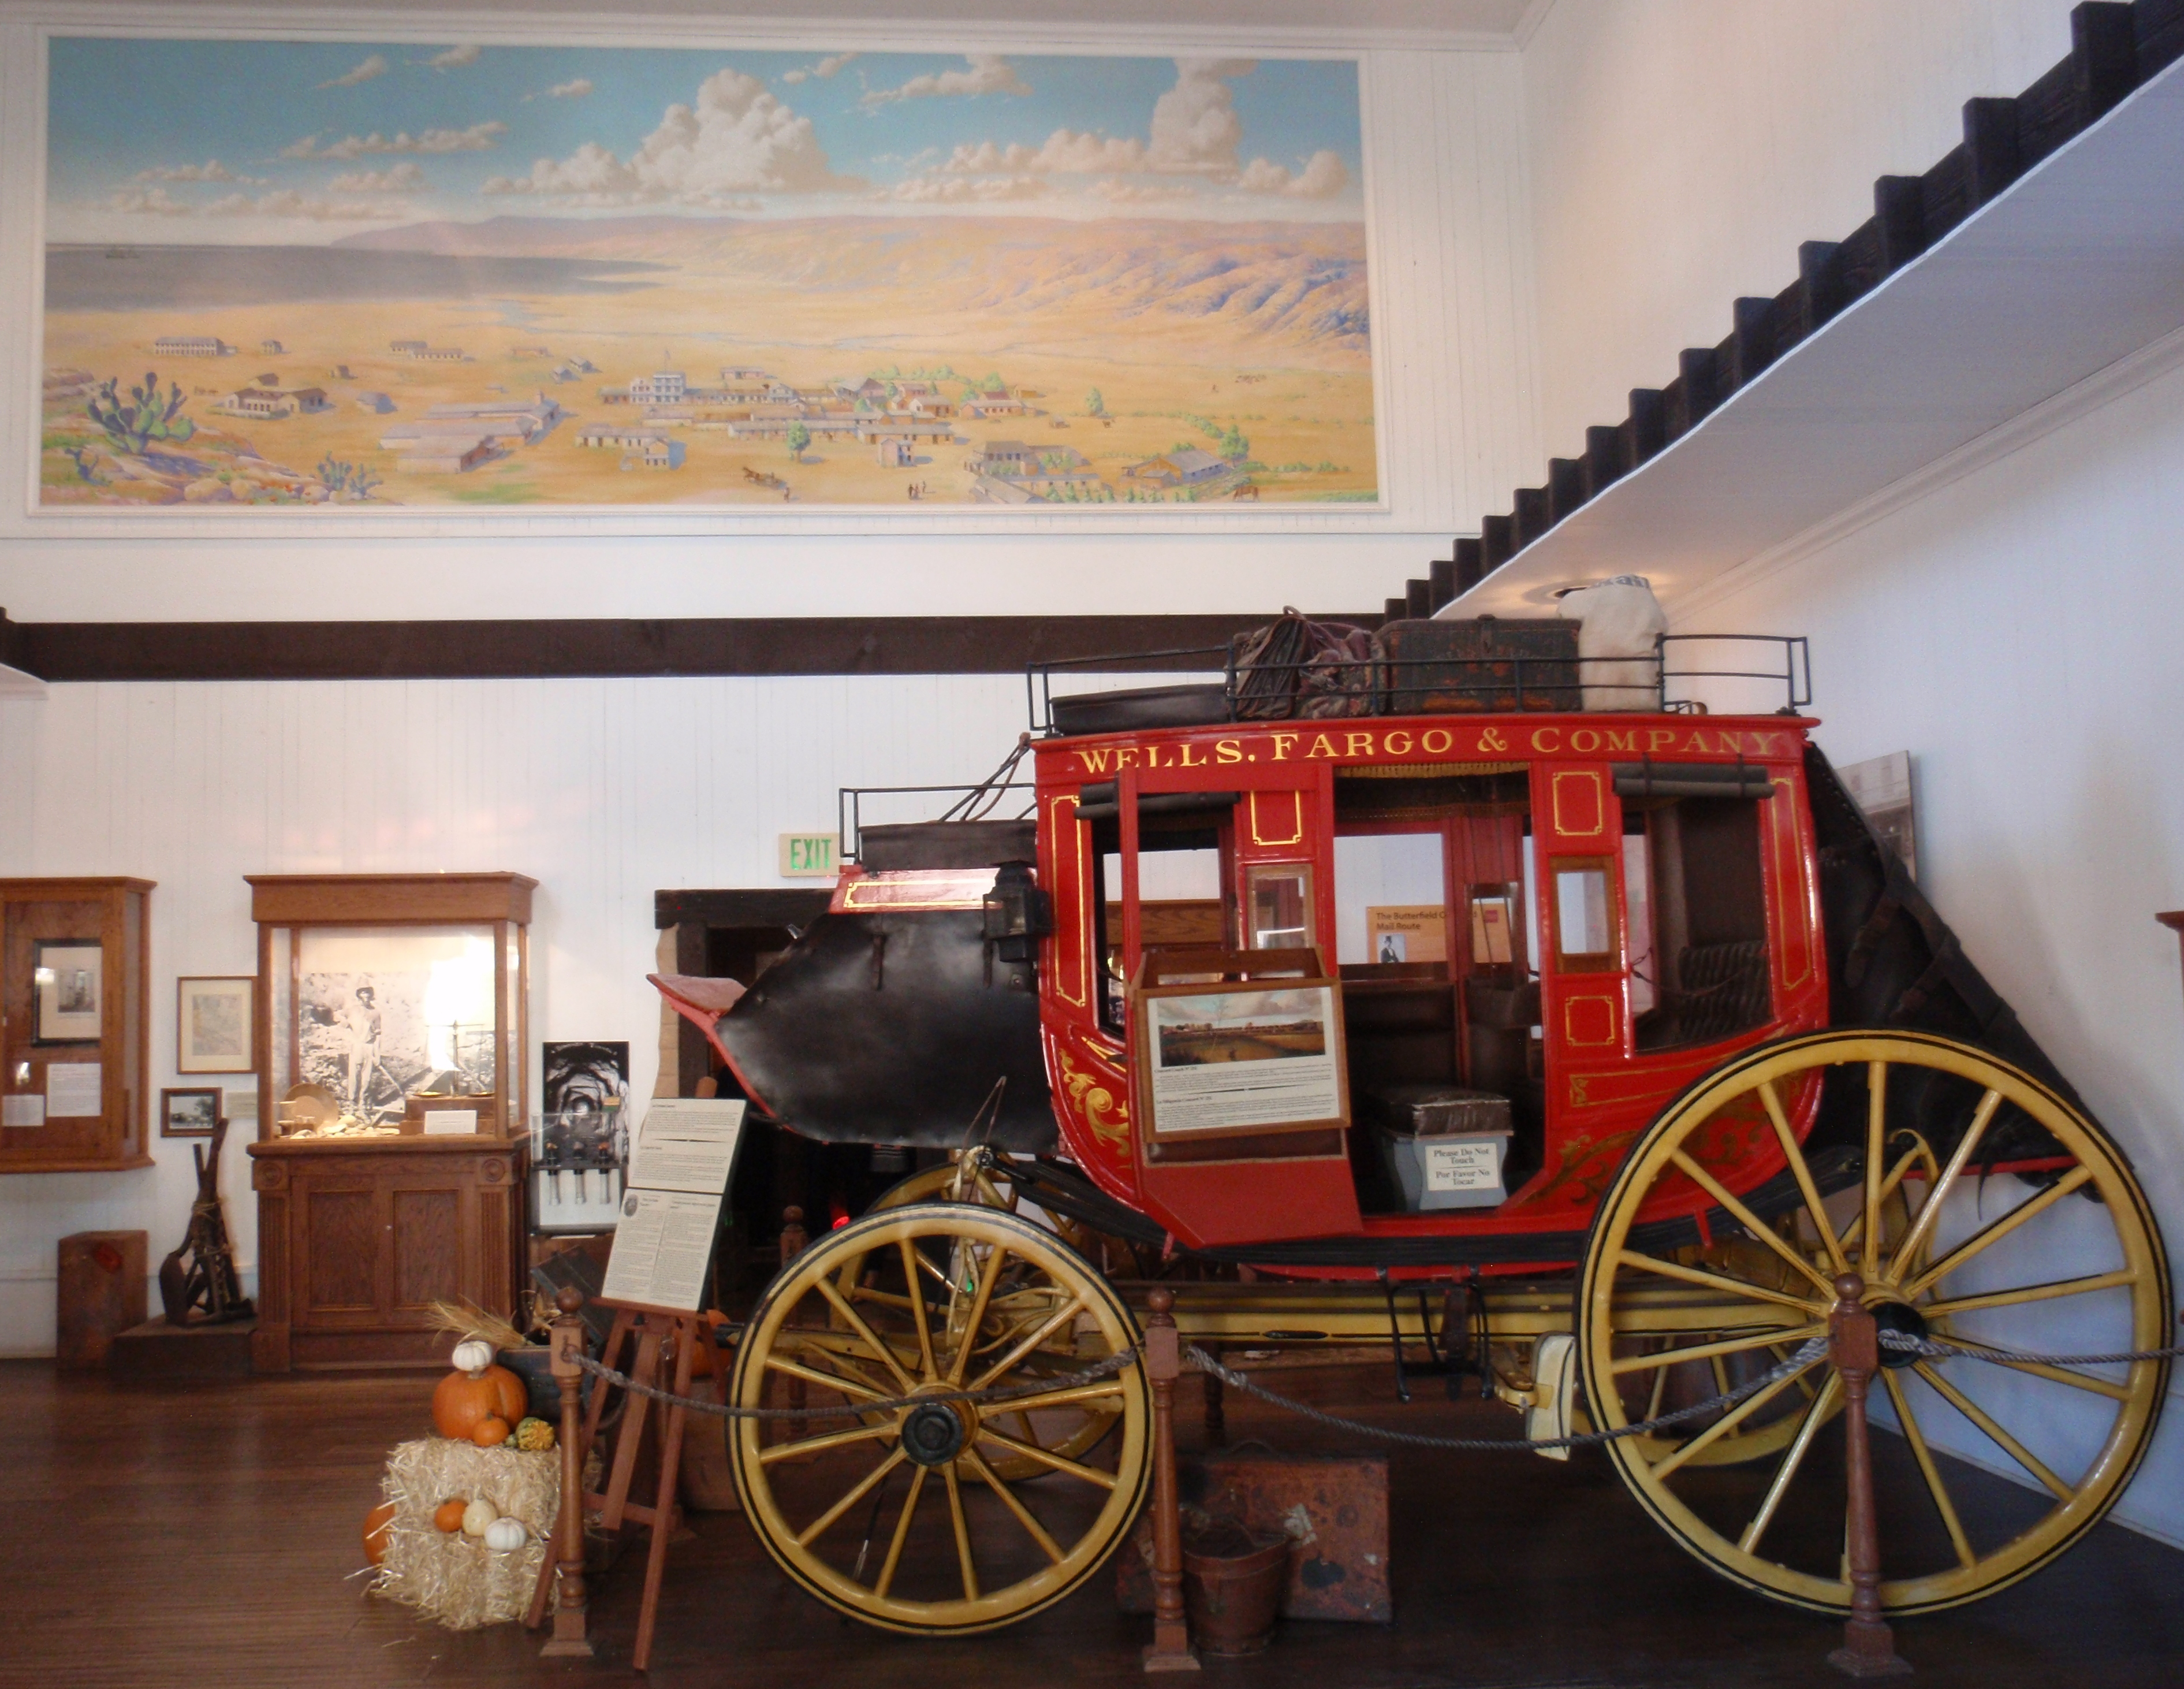 Concord stage coach at Wells Fargo museum in San Diego. Painting at top is of Old Town San Diego in its prime time. Photo by James Ulvog.